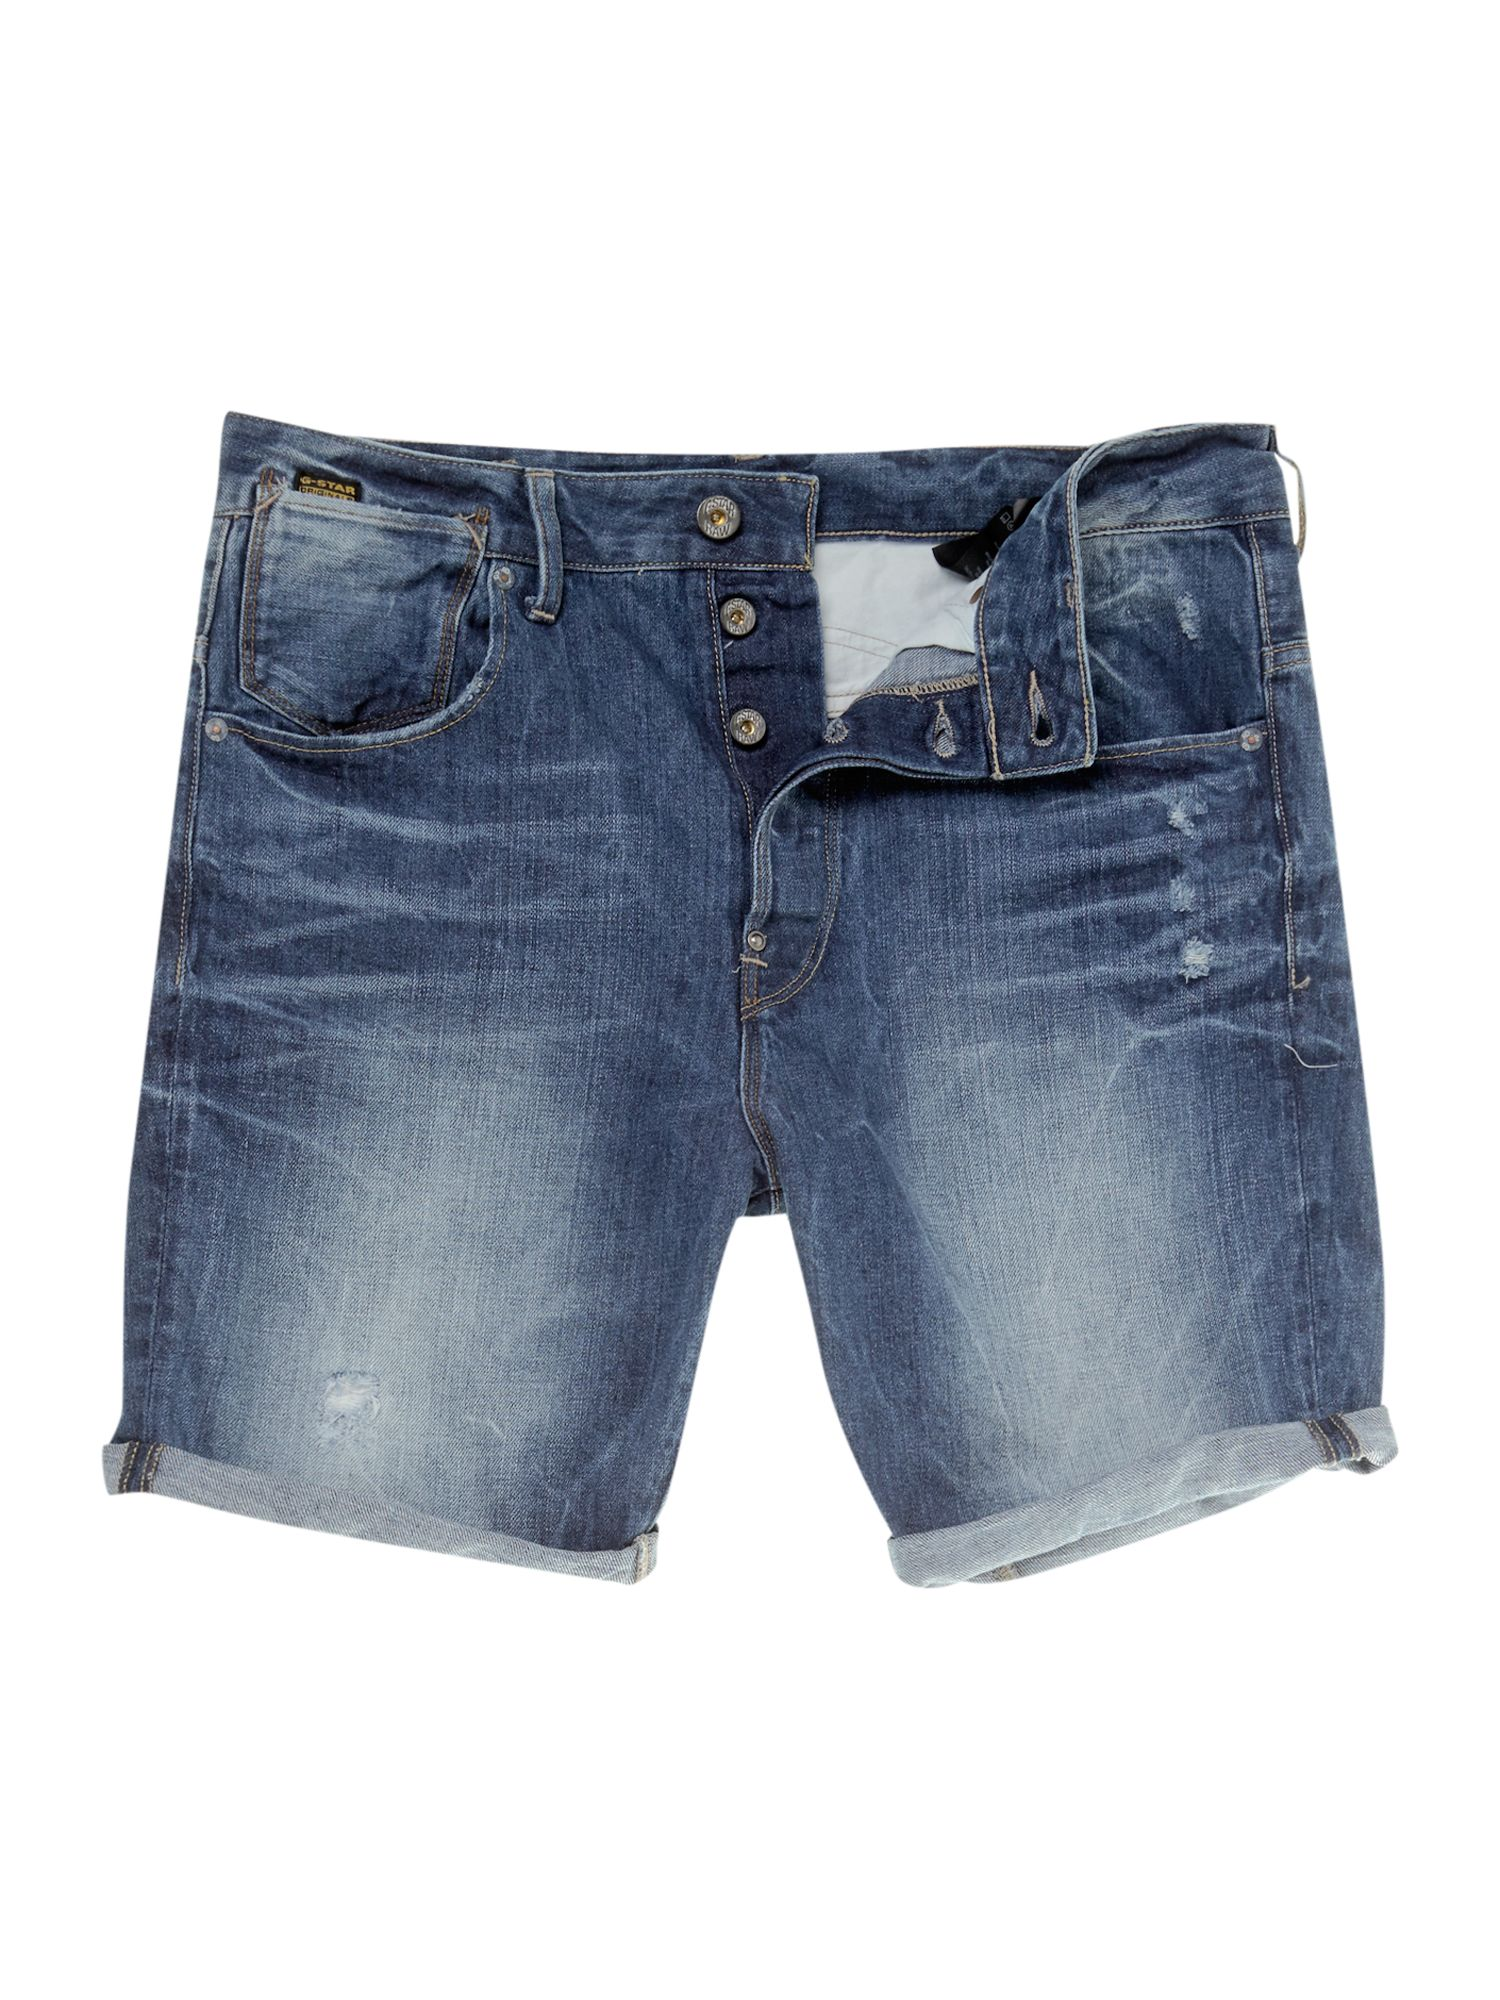 Tpared watton denim shorts